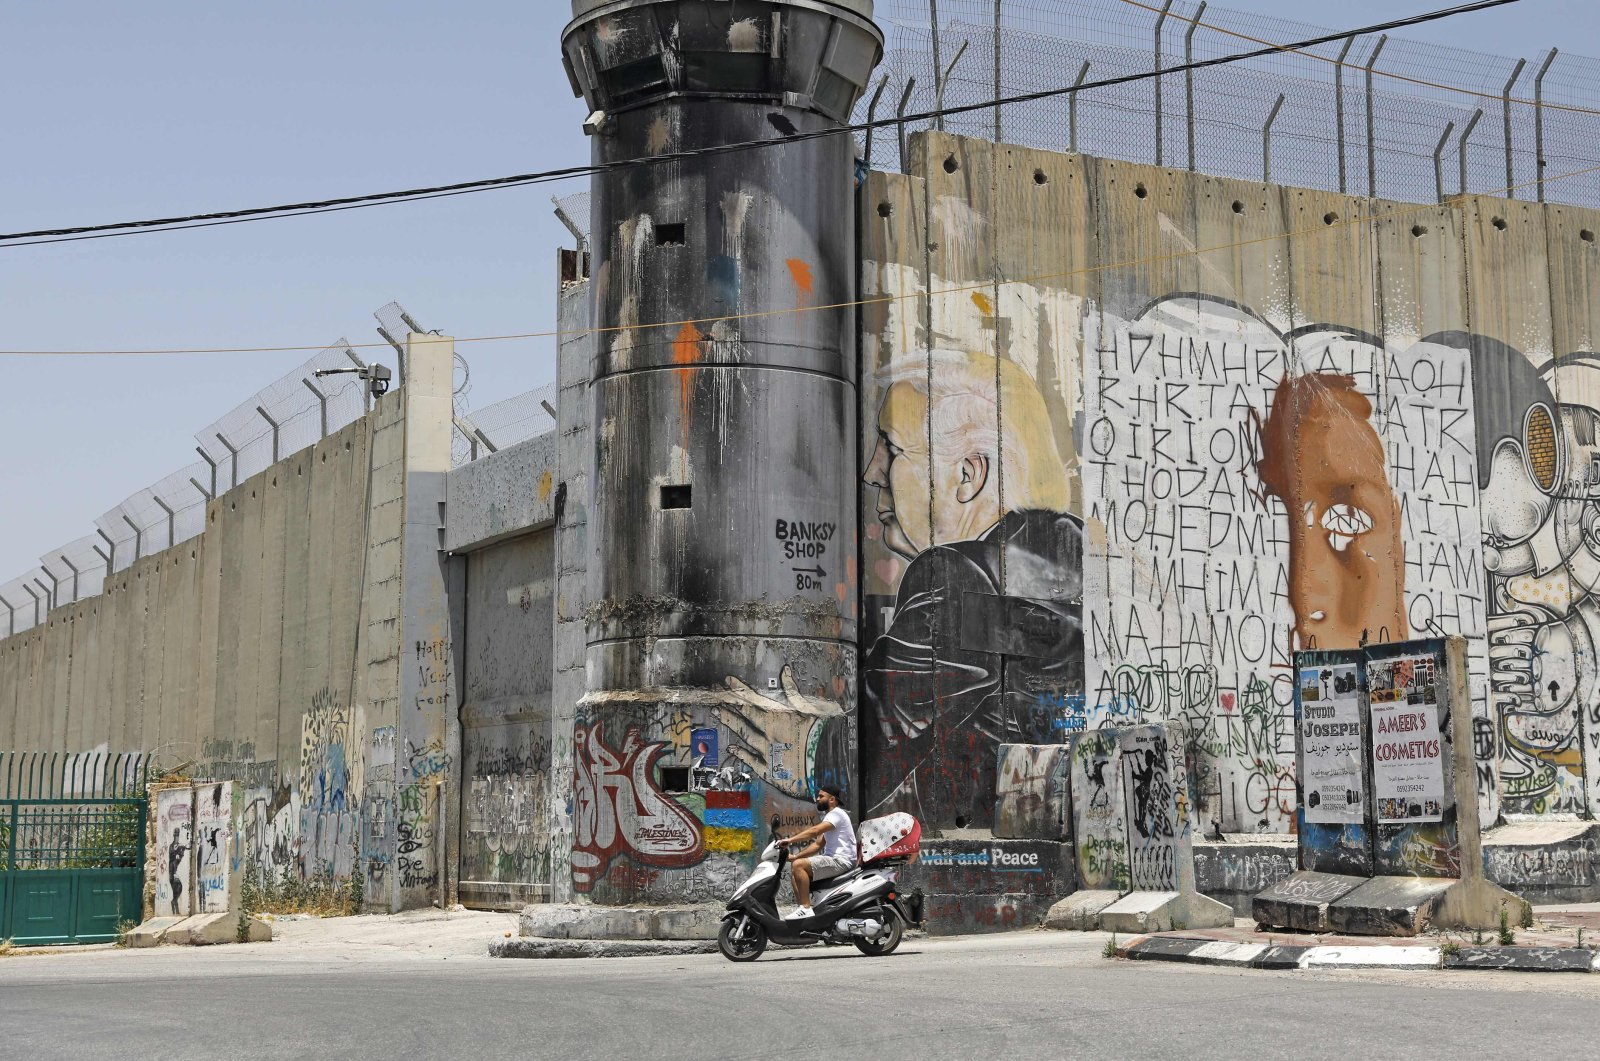 A Palestinian man rides his motorcycle past a mural painting of US President Donald Trump on Israel's controversial separation barrier in the West Bank city of Bethlehem on June 8, 2020. (AFP Photo)